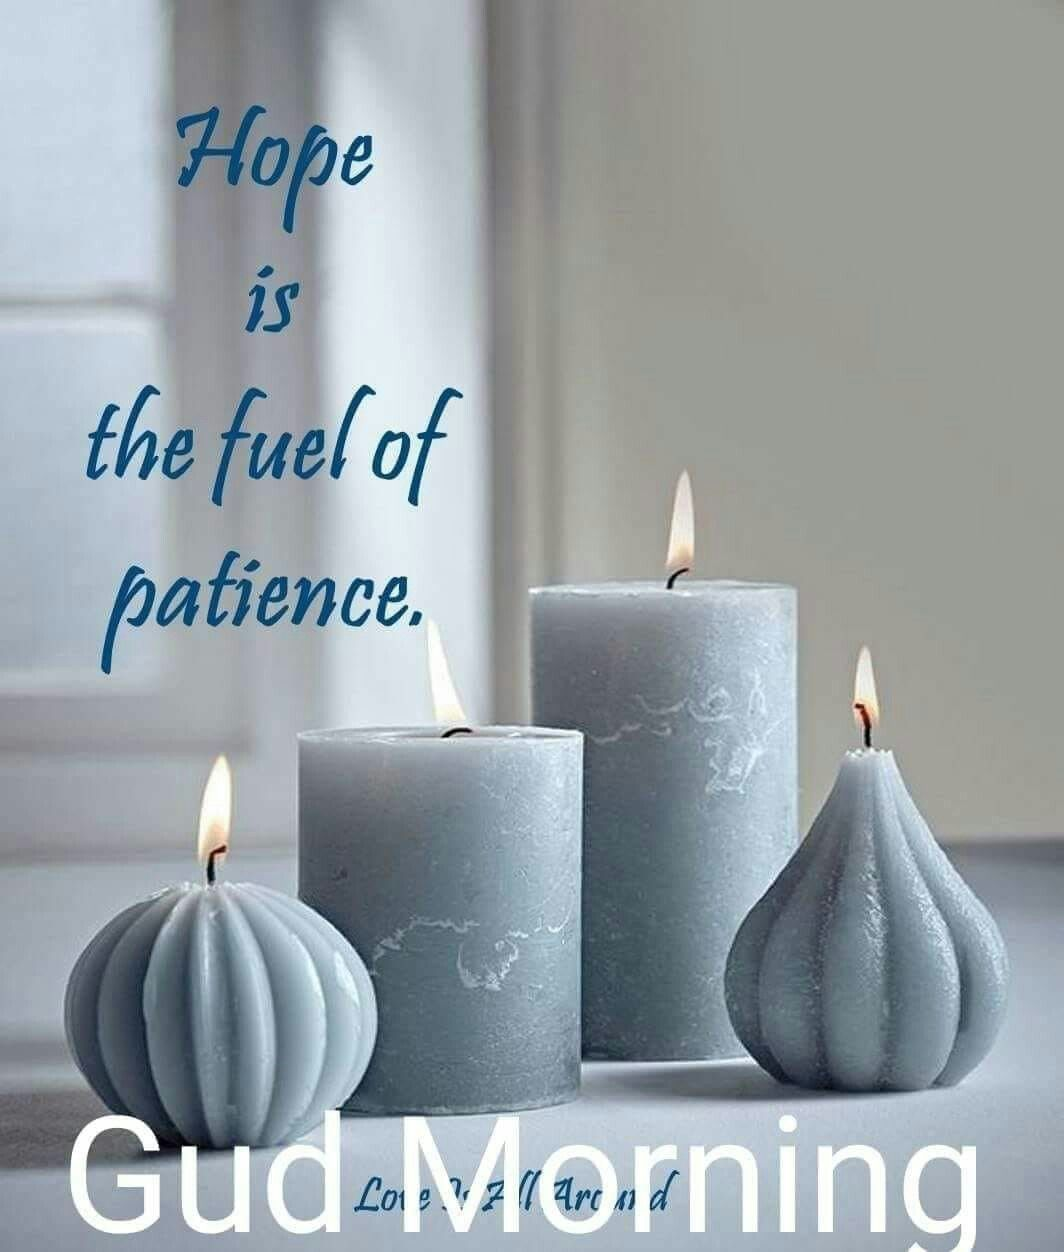 Pin by Shiva Sivanesarajah on Good Morning Image | Candles, Candle decor, Unique candle holders